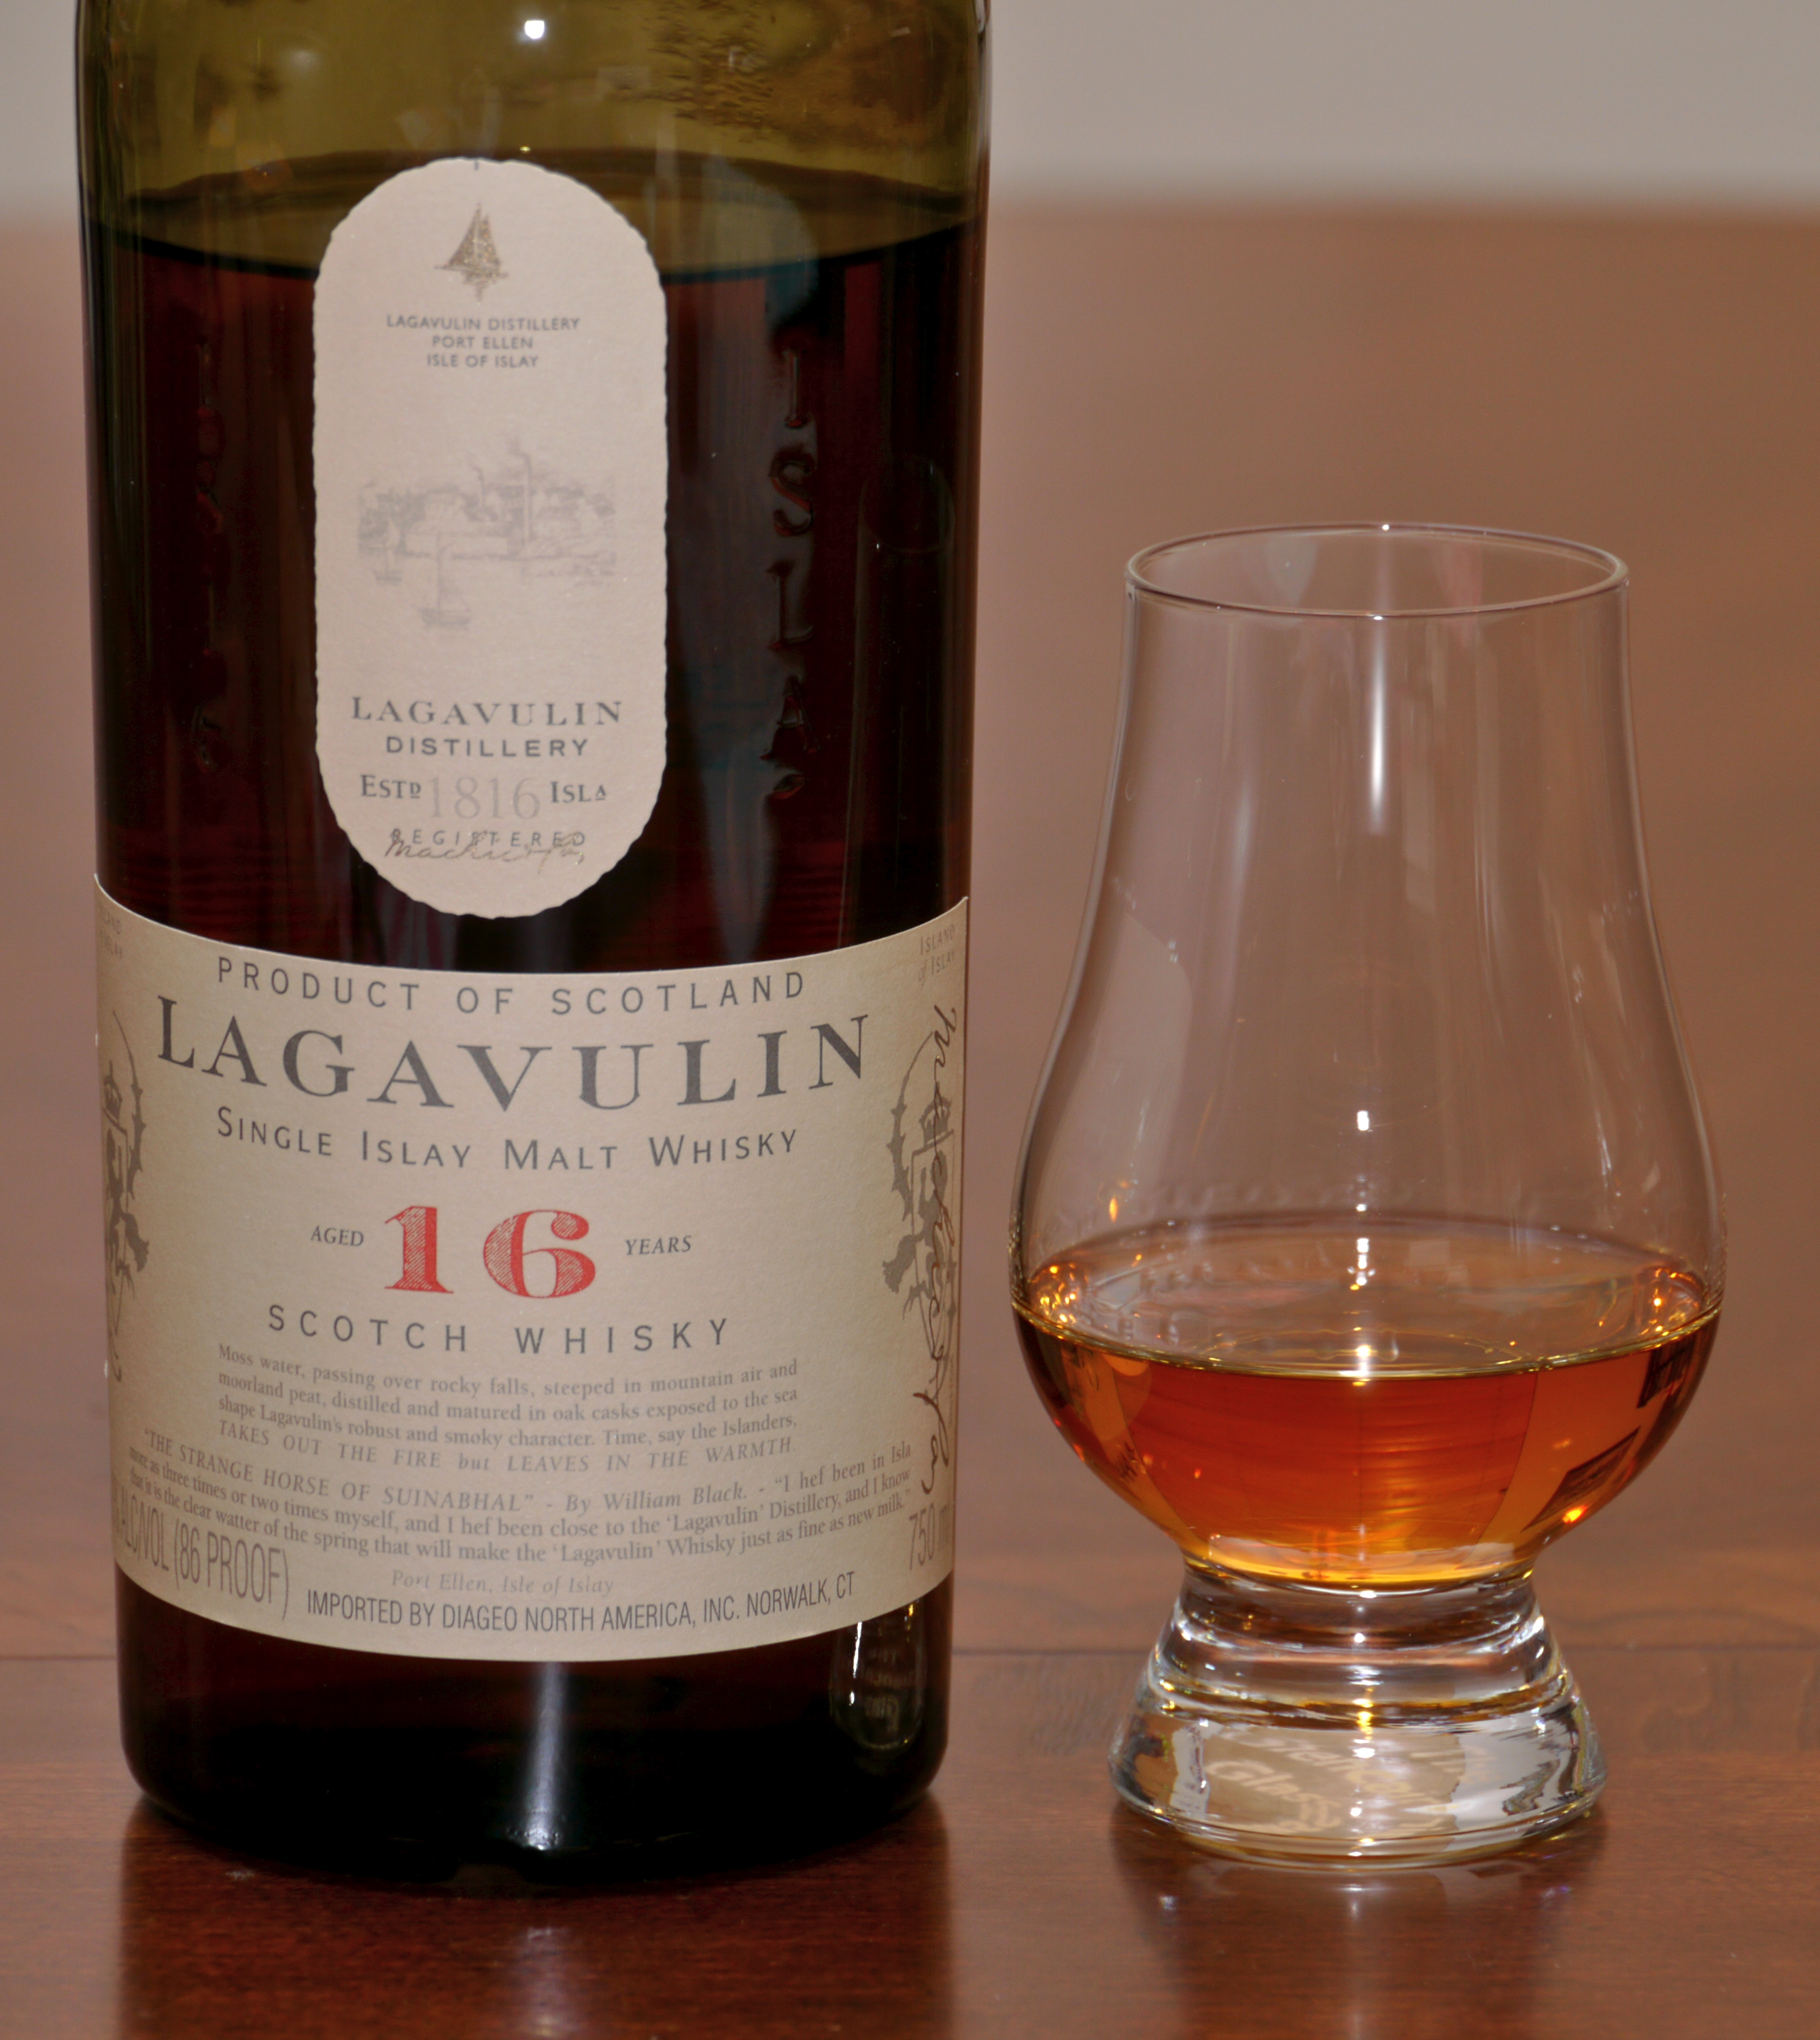 Situated at the picturesque lagavulin bay, this is an experience not to be missed